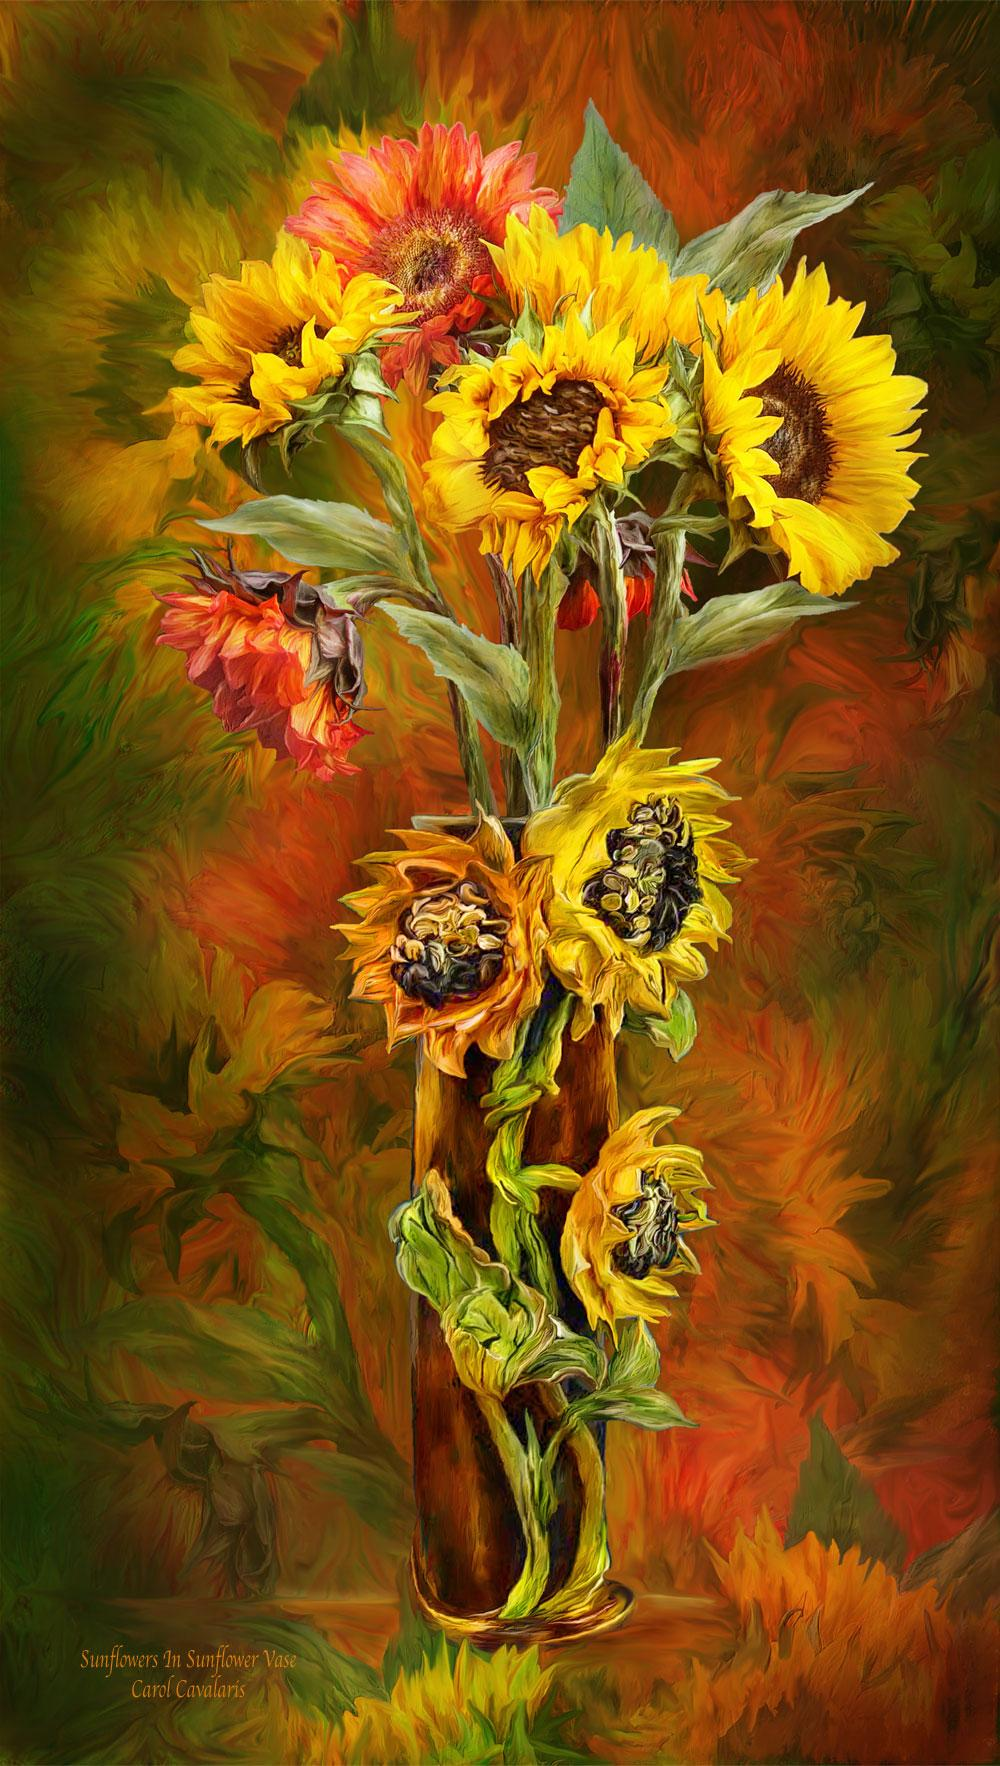 Sunflowers In Sunflower Vase